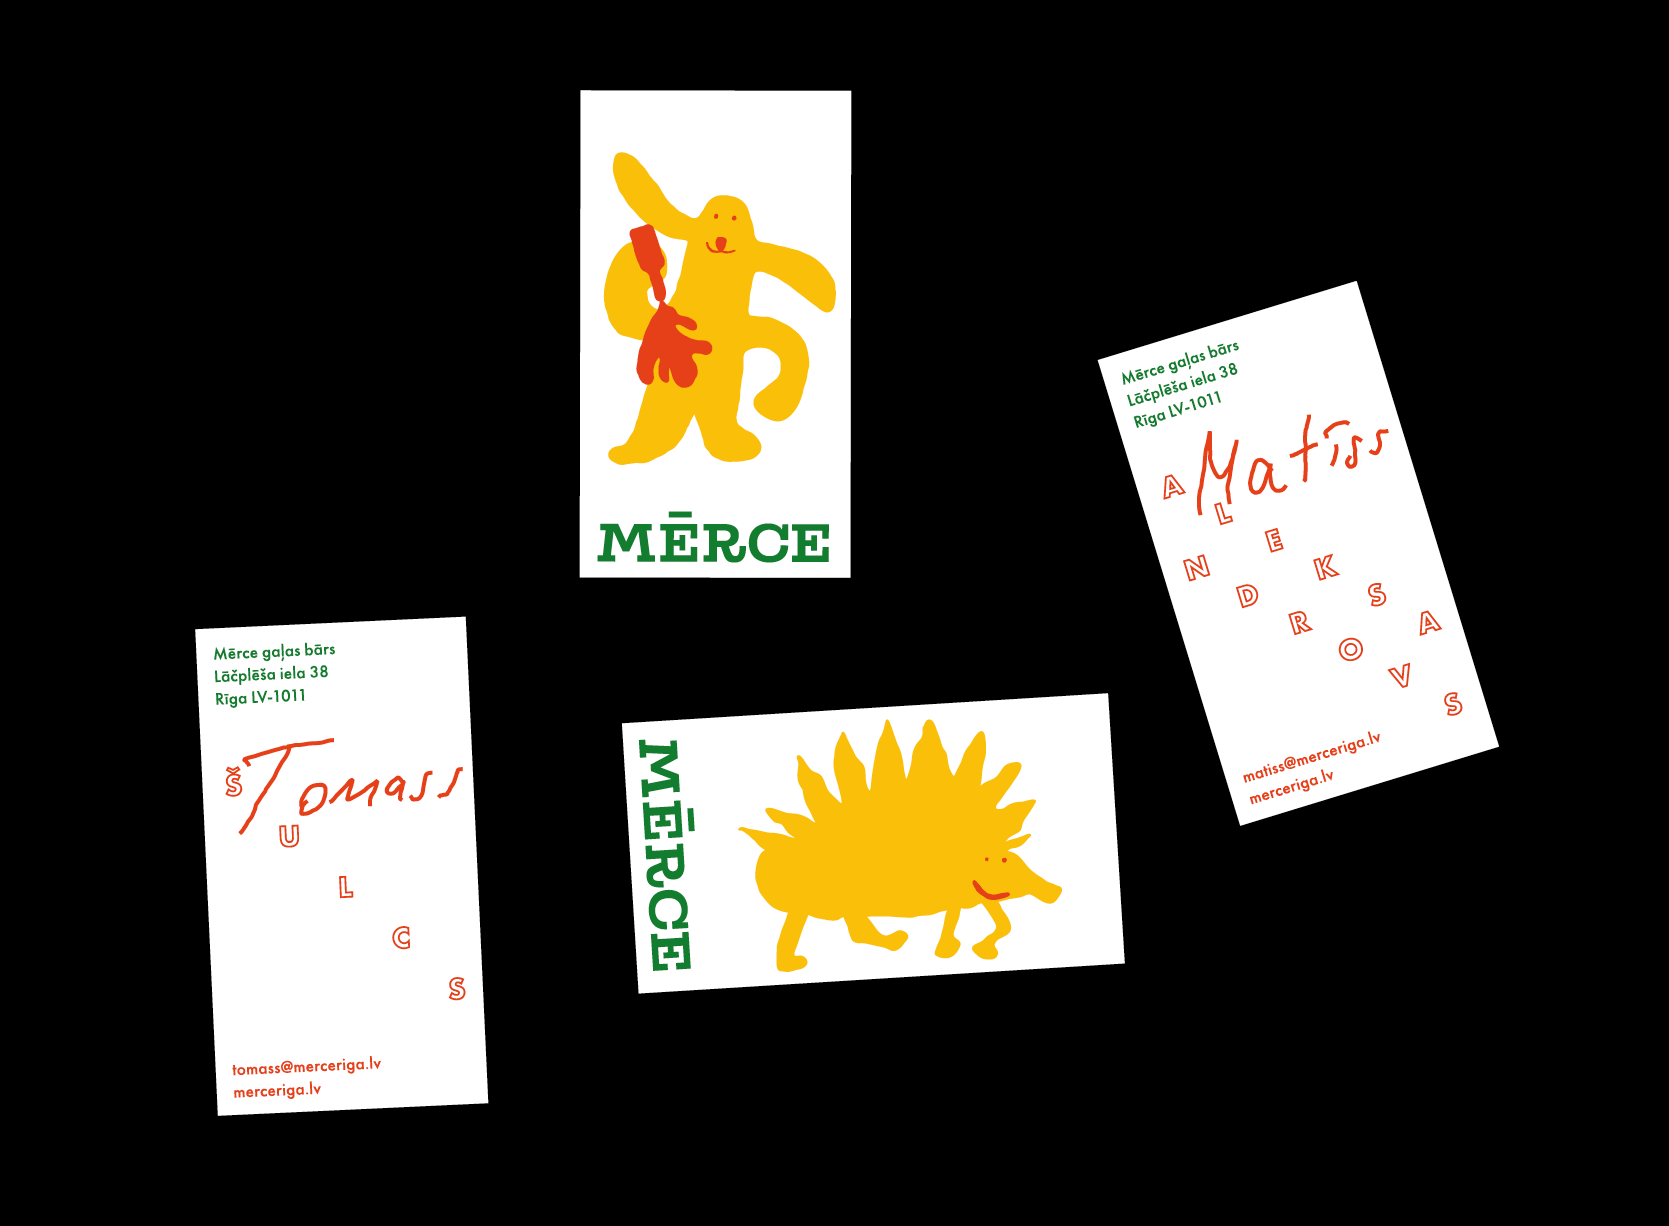 Business cards example.